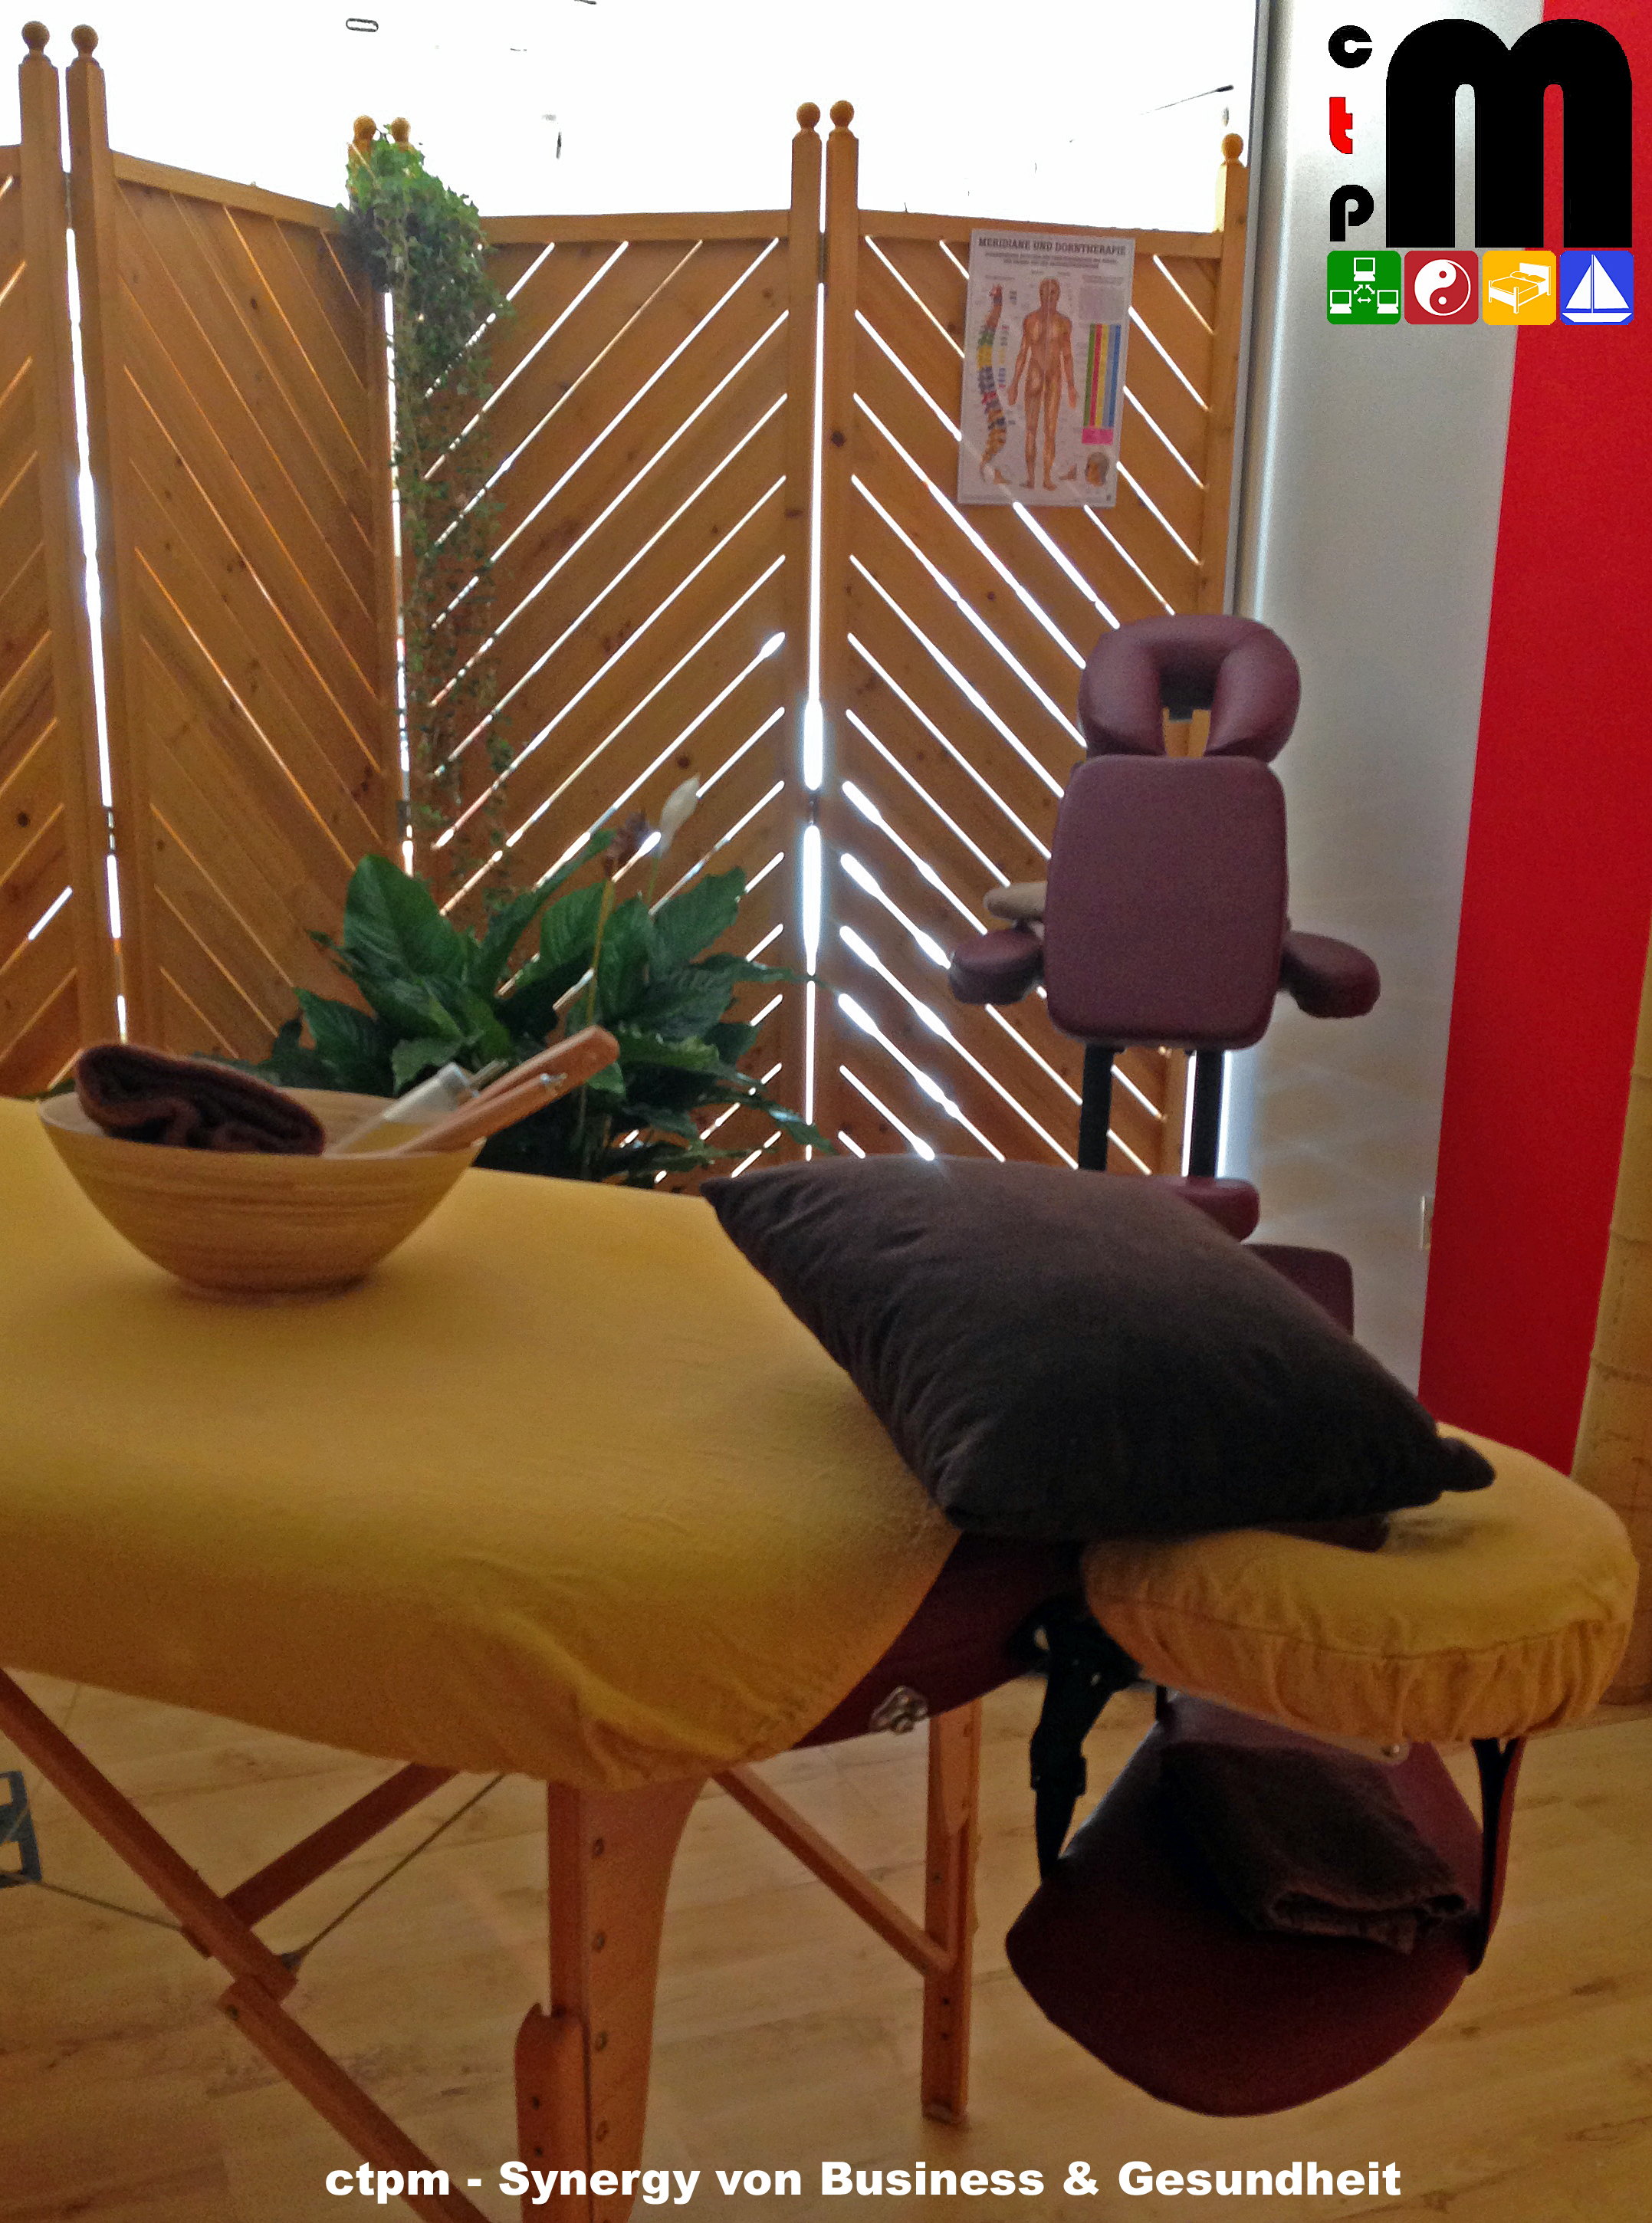 Wellness,Salzgrotte und Massage im Bergischen - Ruhe und Erholung#Wellness #Salzgrotte #MassageimBergischen #RuheundErholung--------------------------------------------------------------ctpm - Synergy von Business & Gesundheit#synergyvonbusinessundgesundheit#ctpmsynergyvonbusinessundgesundheit--------------------------------------------------------------Business-Unit:CTPM - BUSINESSIT-Consulting - Development & Programming - Administration - Business Analysis - Solution Architectures - TestmanagementManagement-Consulting - Career Planning - Start-up Coaching & Consulting - Freelancer Management - Recruitment Consultant - Backoffice - PMOTraining & DevelopmentCTPM - HEALTHHealth & Wellness - Burnout - Prevention - Education & Training - Coaching - Health-related TravelMassage & WorkoutSaltgrottoCTPM - ACCOMMODATIONBed & BreakfastApartmentConference RoomMeetingpointCTPM - MOVECorporate Sailing & Hiking - Coaching - Teambuilding & EventsBoating School - Boating License - Sailing & TravelRent a SkipperGuests HikingPersonal Training--------------------------------------------------------------Tags#ctpm#ctpm-business #ctpmbusiness #business#it-consulting #itconsulting #it #consulting #development #programming #developmentandprogramming #developmentprogramming #oracle #plsql #oracledba #webdesign #wordpress#oracleadministration #businessanalysis #solutionarchitectures #testmanagement #testmanager #softwarearchitect#management #consulting#managementconsulting #careerplanning #start-upcoaching #start-up-coaching #startup-coaching #startupcoaching #start-upconsulting #start-up-consulting #startup-consulting #startupconsulting #freelancer #freelancermanagement #freelancer-management - #recruitment #consultant #recruitmentconsultant #backoffice #PMO#training #development#traininganddevelopment#trainingdevelopment#ctpm-health #ctpmhealth #health#health #wellness #healthwellness #burnout #Prevention #burnoutprevention #education #training #healthtraining #coaching #healthcoaching #healthrelatedtravel#massage #workout #healthmassage #healthworkout#saltgrotto #saltcave #salzgrotte#ctpm-accommodation #ctpmaccommodation #accommodation#bedandbreakfast #bedbreakfast #bed-breakfast #privatzimmer #gästezimme #hotelzimmer #monteurzimmer #messezimmer #messebetten #messeköln #messecologne #messedüsseldorf #übernachtung #unterkunft #schlafen#Apartment #appartment #ferienwohnung#conferenceroom #conference-room#meetingpoint #büro #büroaufzeit #office#ctpm-move #ctpmmove #move#corporatesailing #corporatehiking#corporate-sailing #corporate-hiking#corporate #sailing #corporate #hiking #movecoaching #teambuilding #teamevents#boating #boatingschool #boating-school#bootsschule #sportbootsschule #segelschule #boatinglicense #boating-license #boating #skippertraining #skipper #skippertrainer #sailingtravel #sailingandtravel #travle #sailing#rent-a-skipper #rentaskipper#guestshiking#personaltraining #personaltrainer#personal-training #personal-trainer--#cologne #köln #koeln #berlin #lindlar #rheinland #germany #deutschland #nrw #europa #nordrhein-westfalen #nordrheinwestfalen #oberbergischerkreis #oberberg